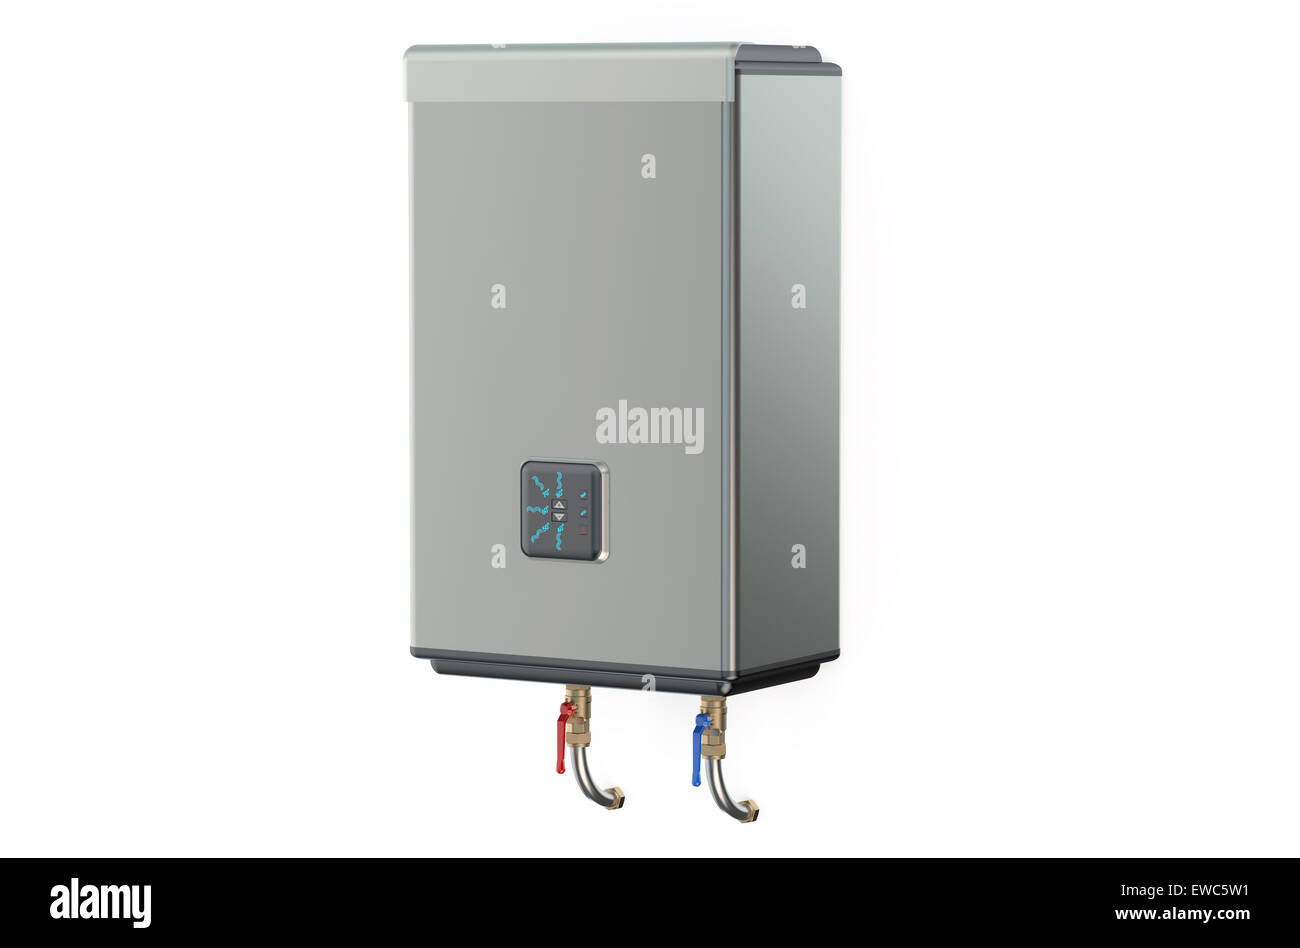 apparatus boiler heater stockfotos apparatus boiler heater bilder alamy. Black Bedroom Furniture Sets. Home Design Ideas